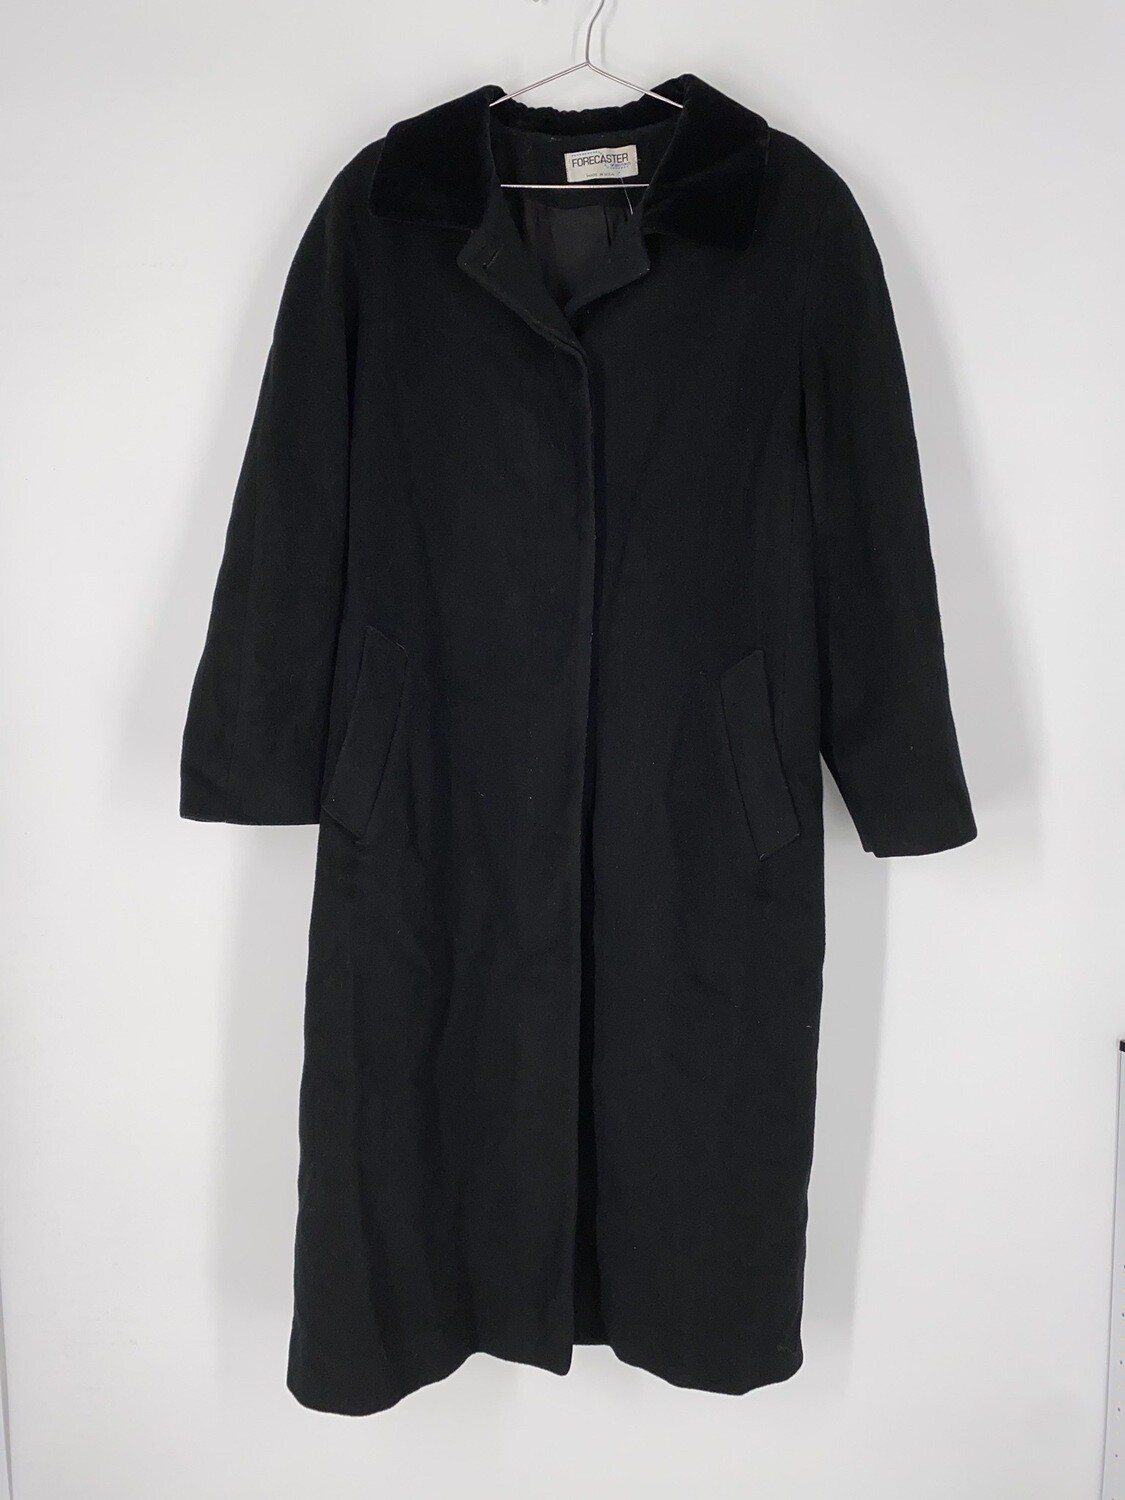 Forecaster Long Black Wool Heavy Jacket Size L